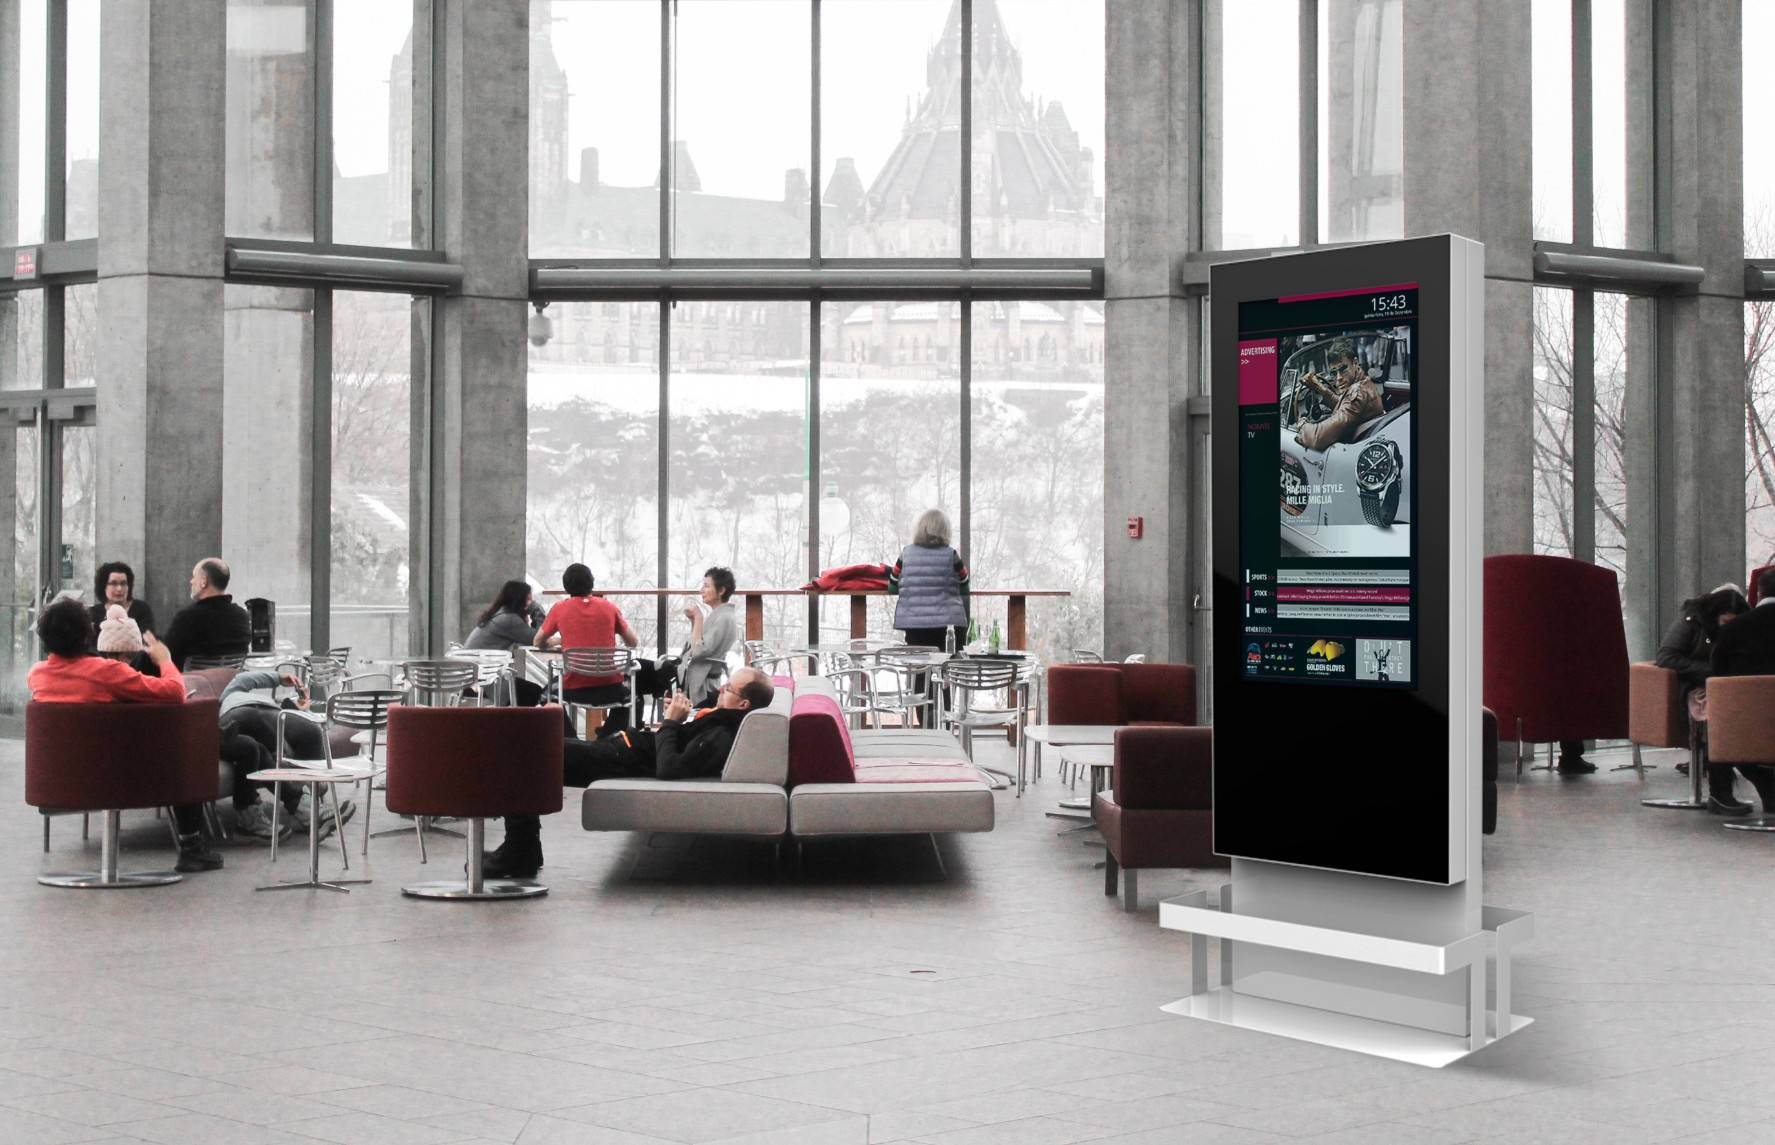 Technology for Coworking Spaces by PARTTEAM & OEMKIOSKS